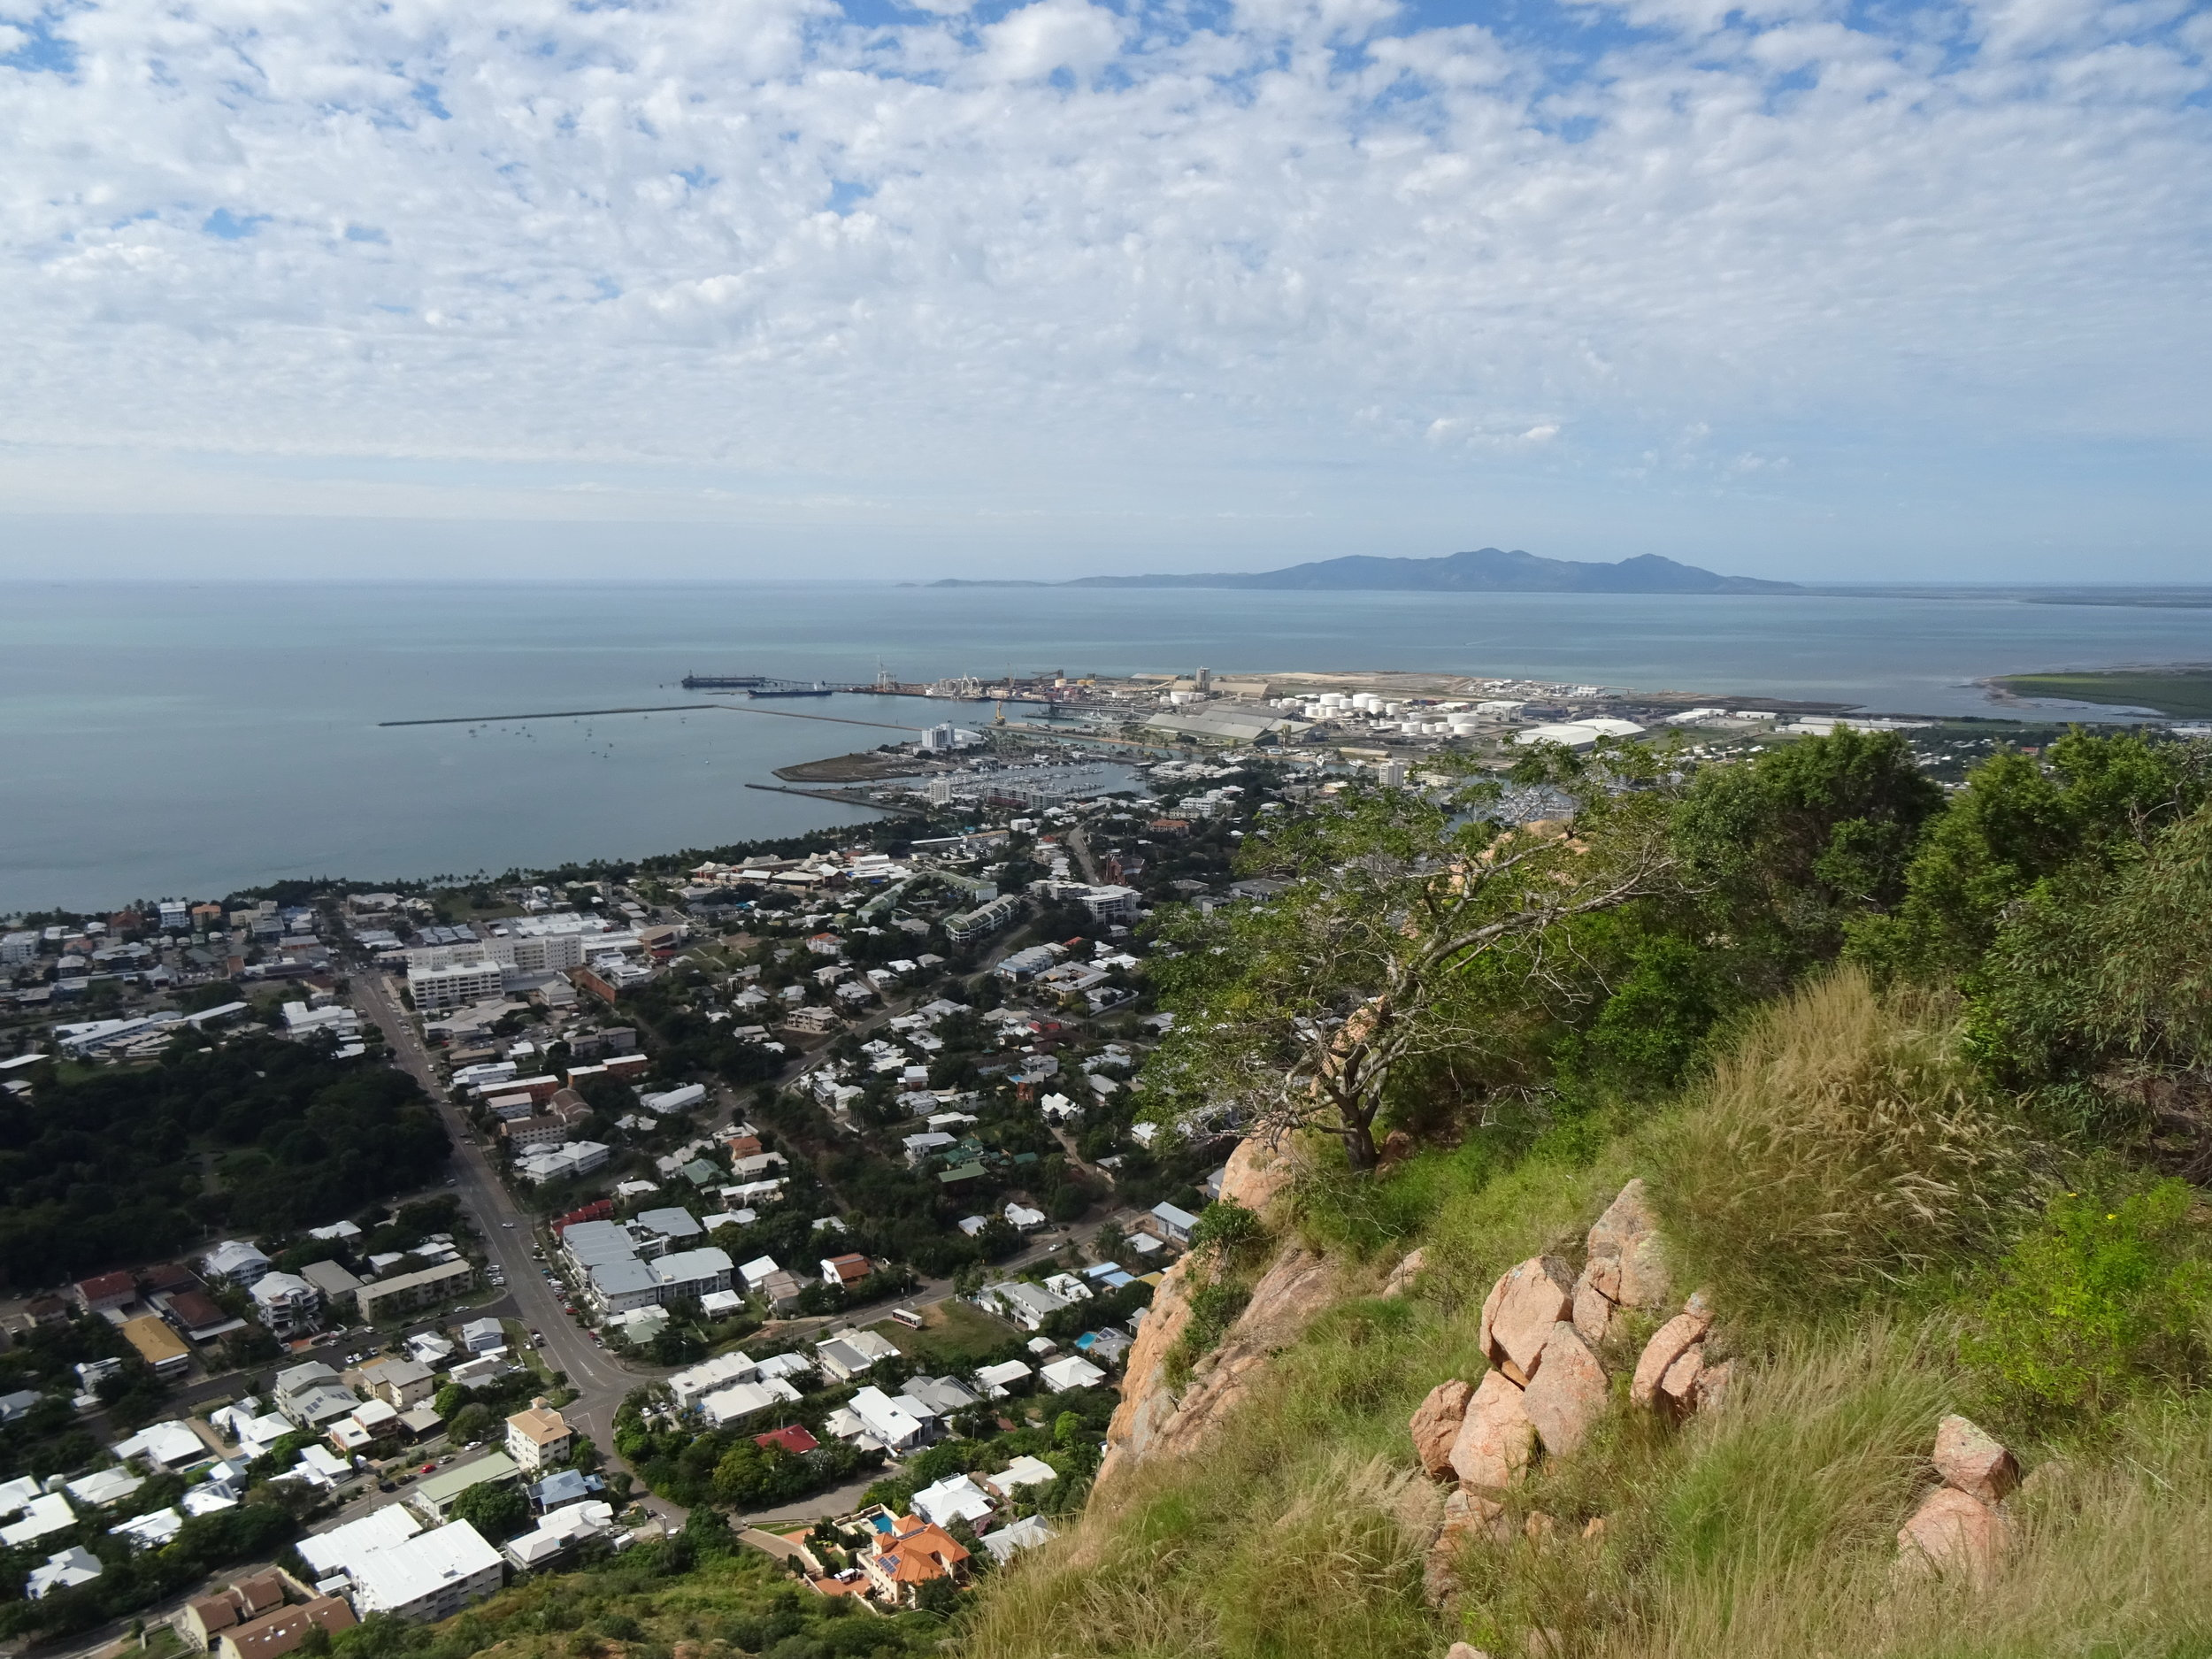 Qld, Townsville